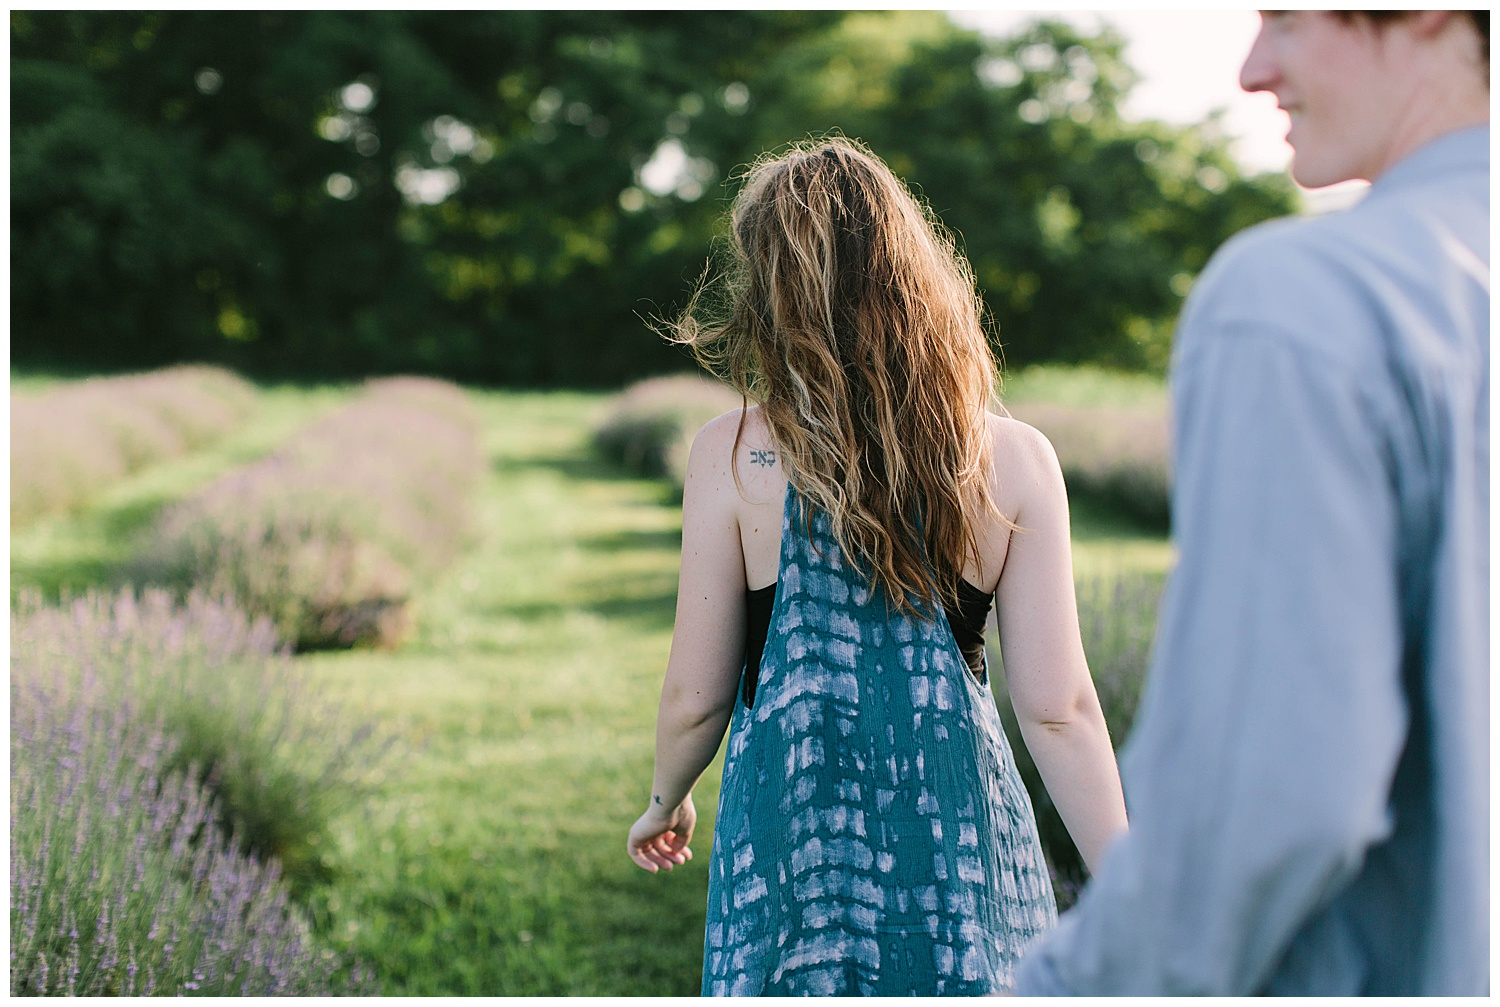 lavender.photoshoot.lavenderfarm.kentucky.engagement.anniversary.photography-36.jpg